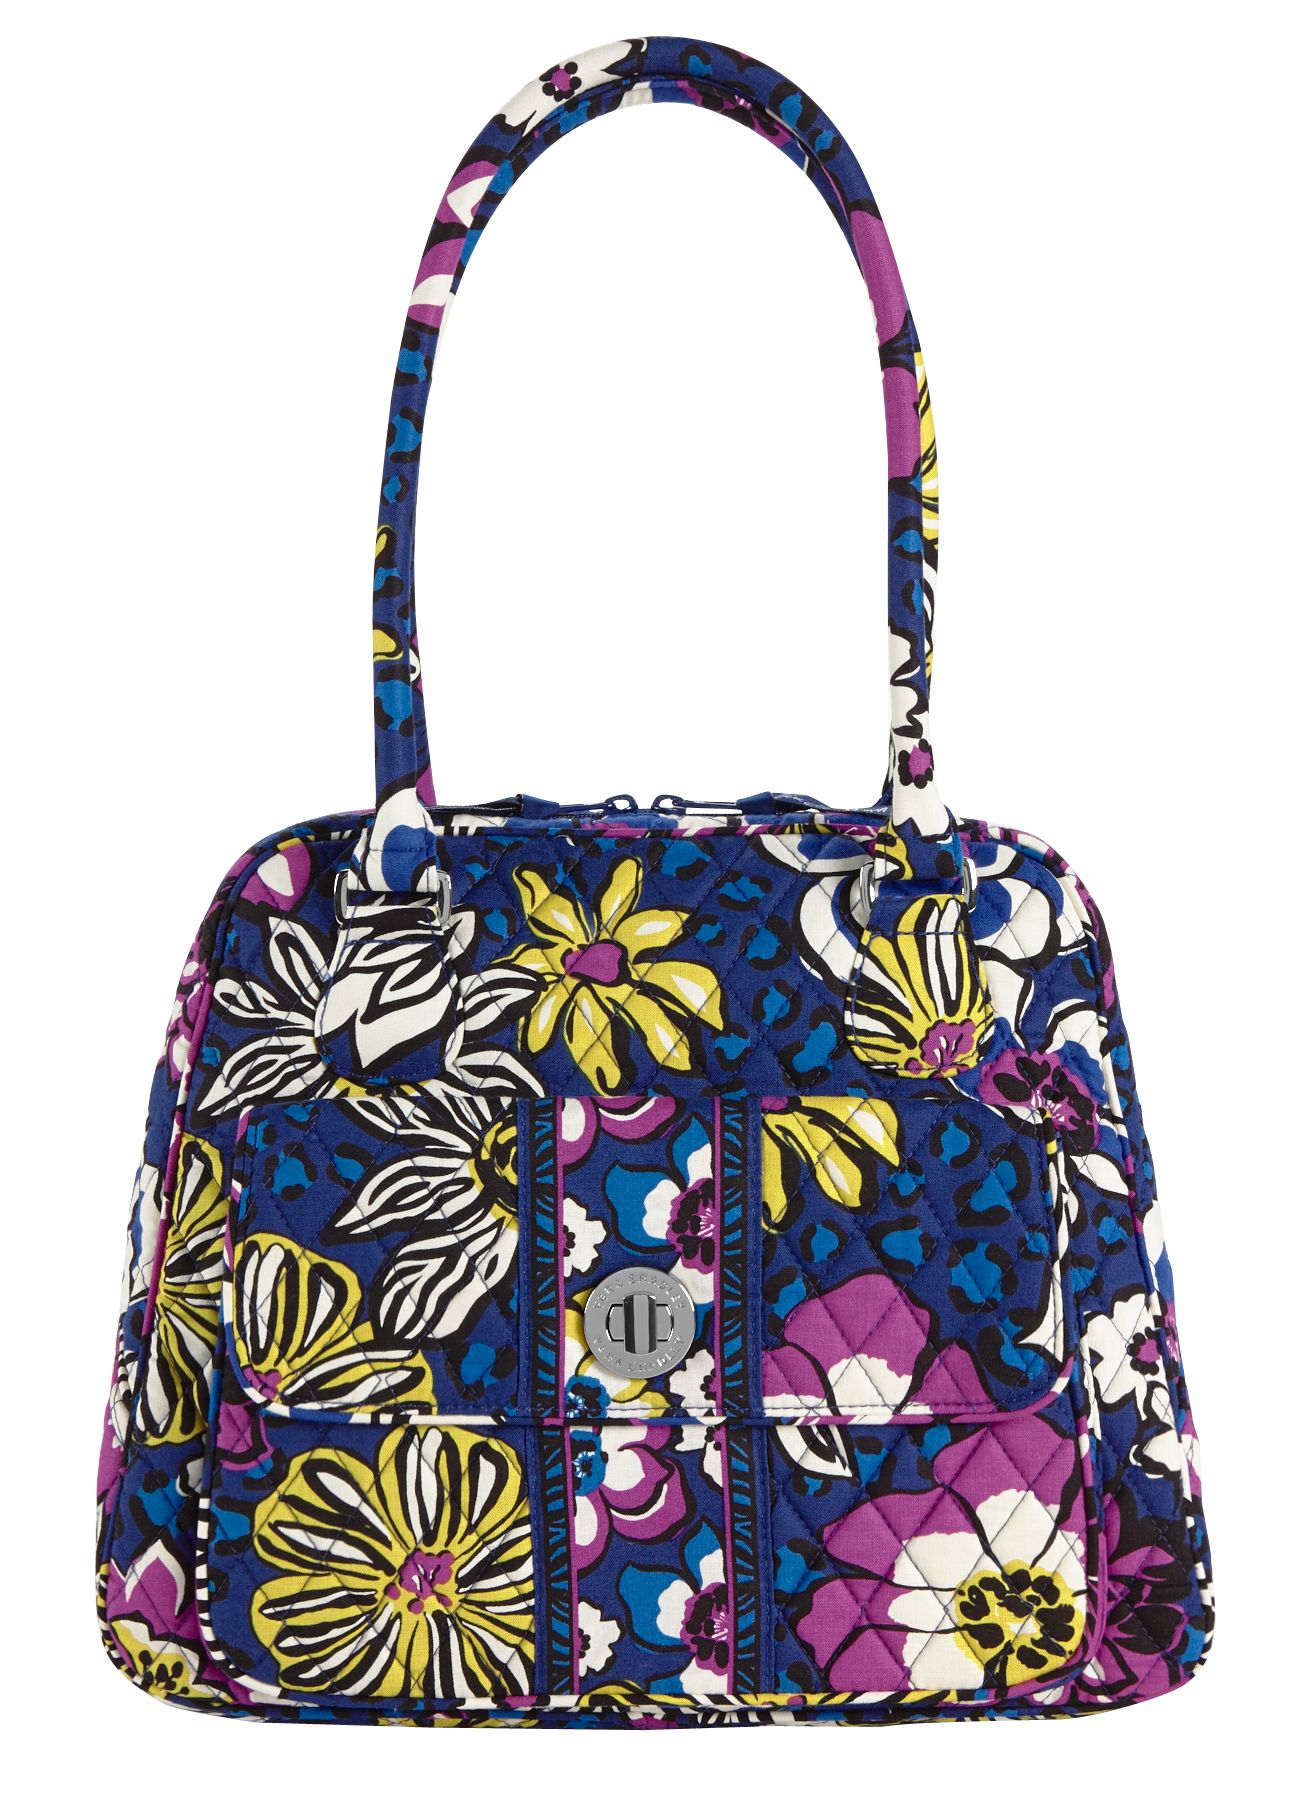 Vera Bradley Turn Lock Satchel in African Violet